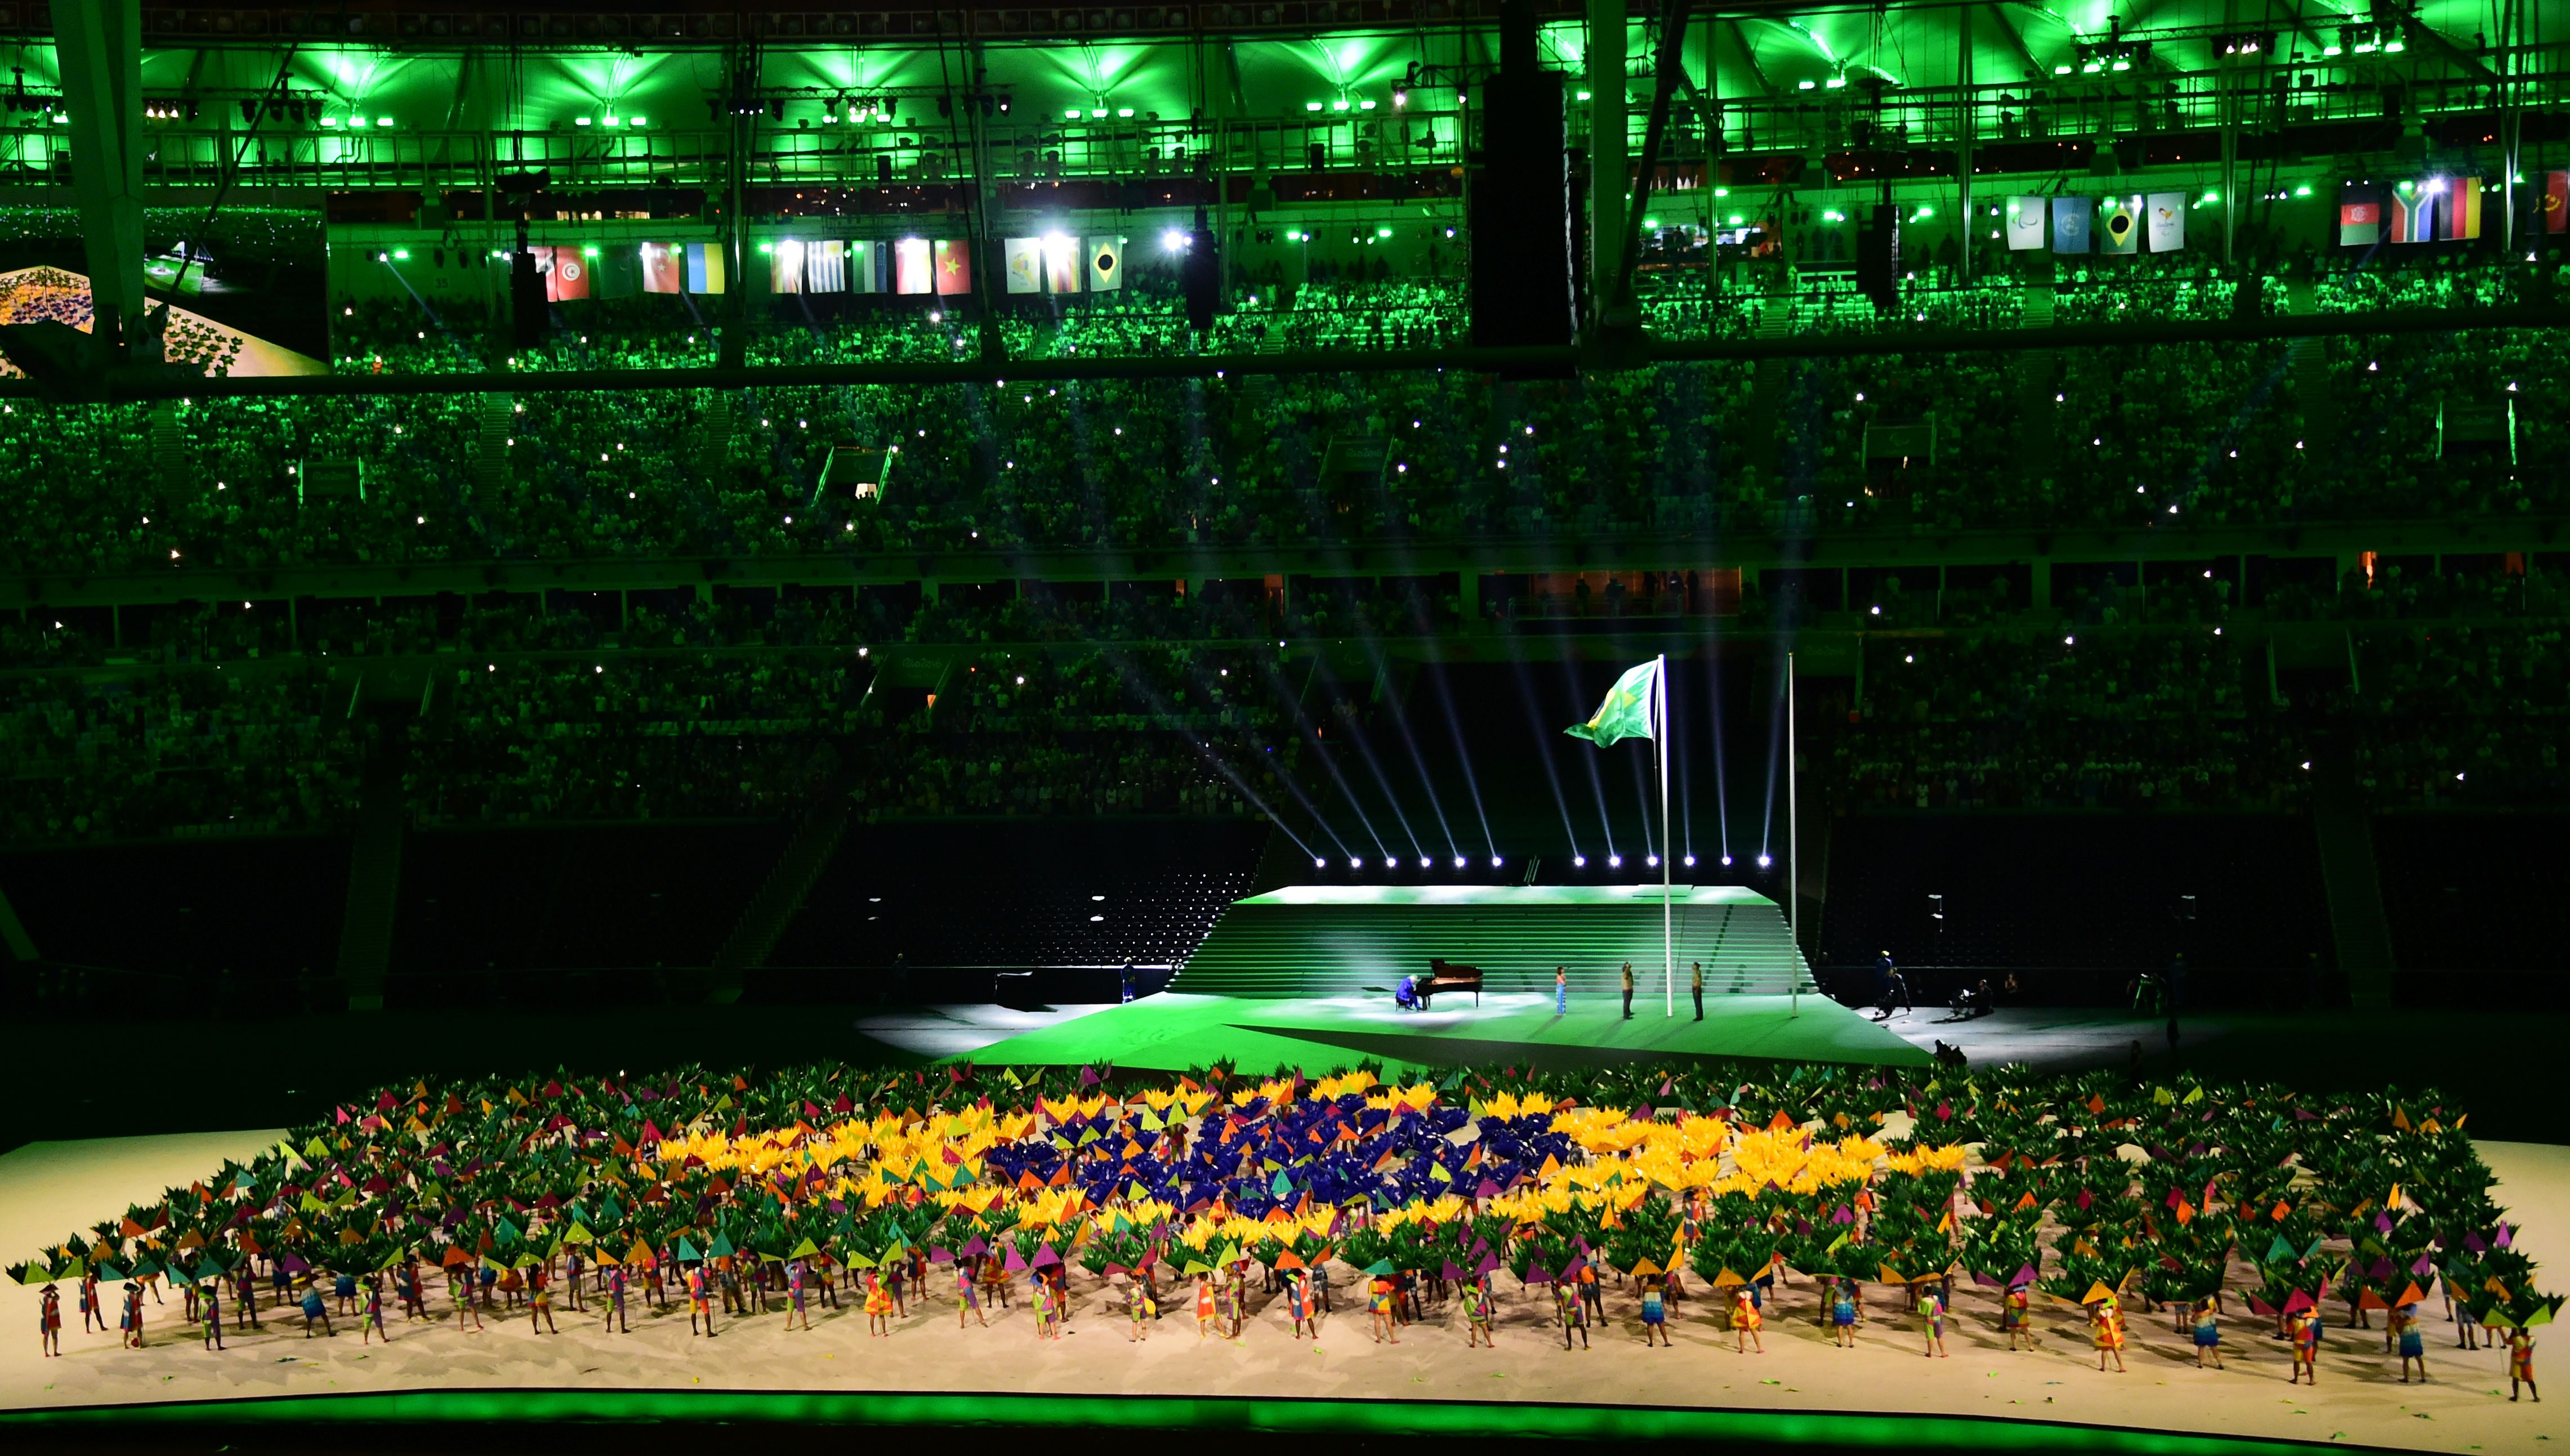 In pictures: Rio kick off 2016 Paralympics in spectacular fashion